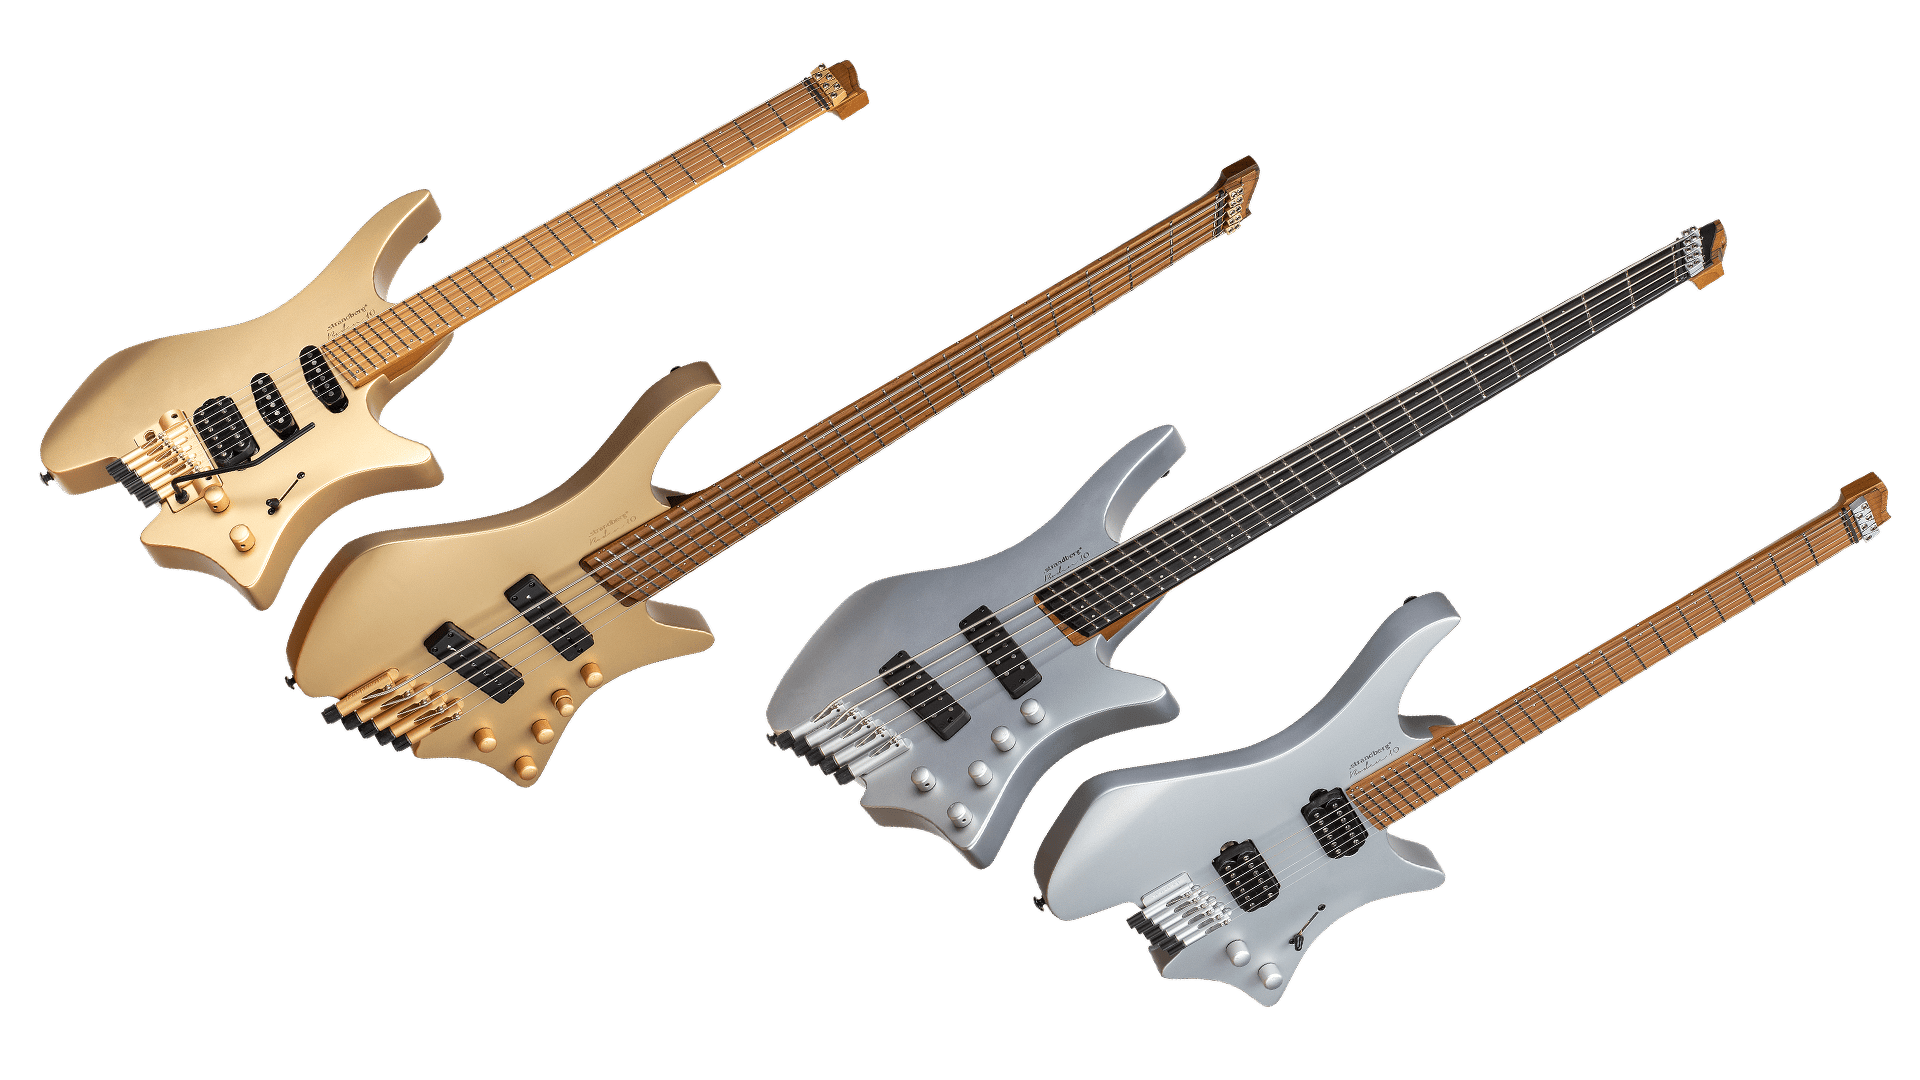 10th anniversary boden headless guitars 5 string and 6 string gold and silver front view